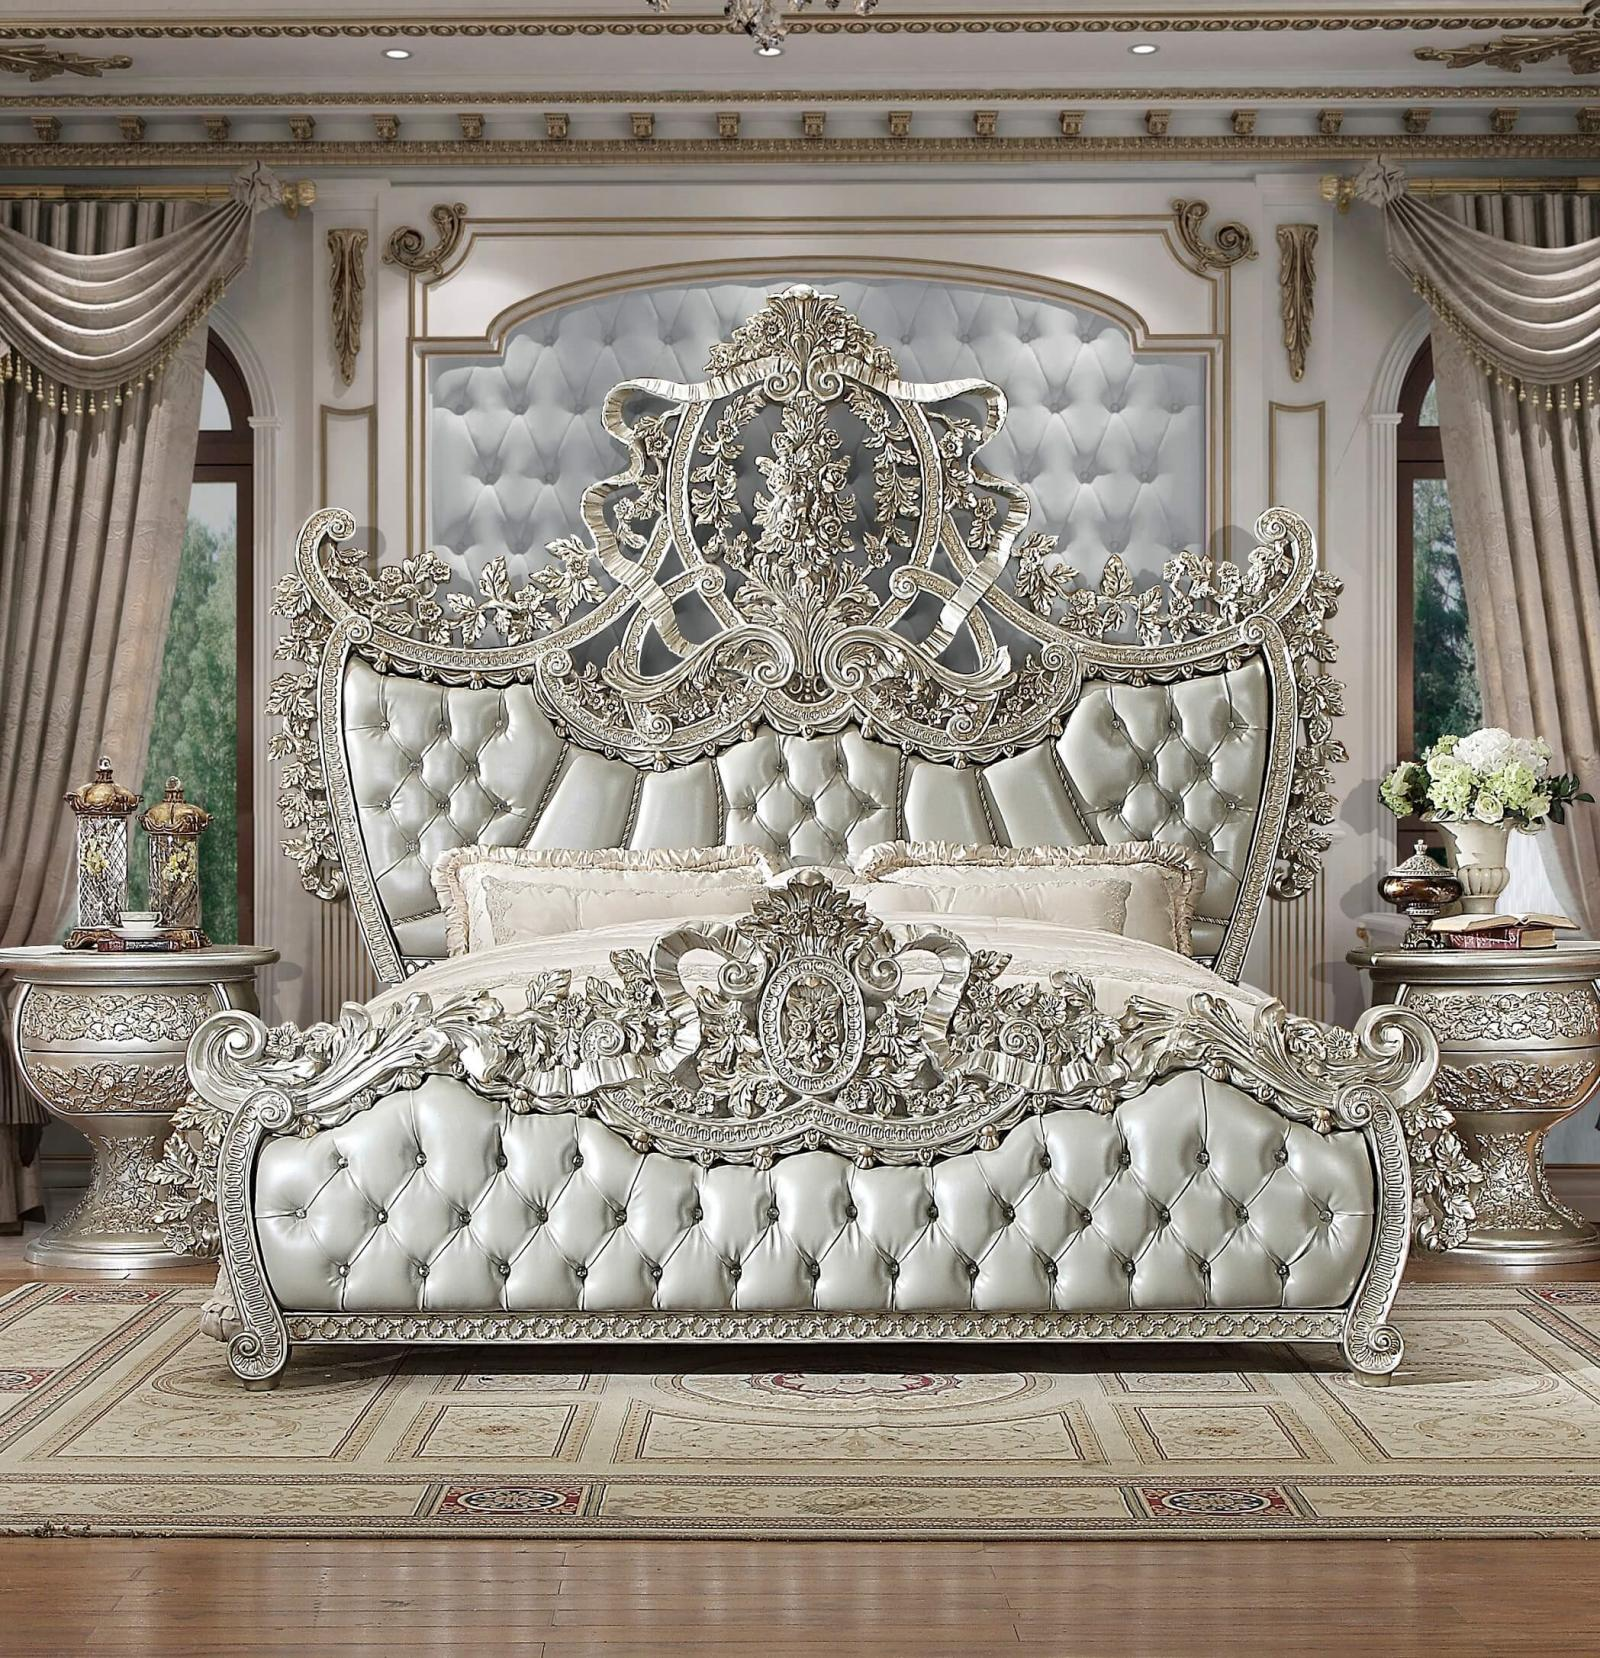 Traditional Bedroom Sets In Silver Metallic By Homey Design Hd Ek8088 Hd N8088 Hd N8088 Hd Dr8088 Hd M8088 Hd Ben8088